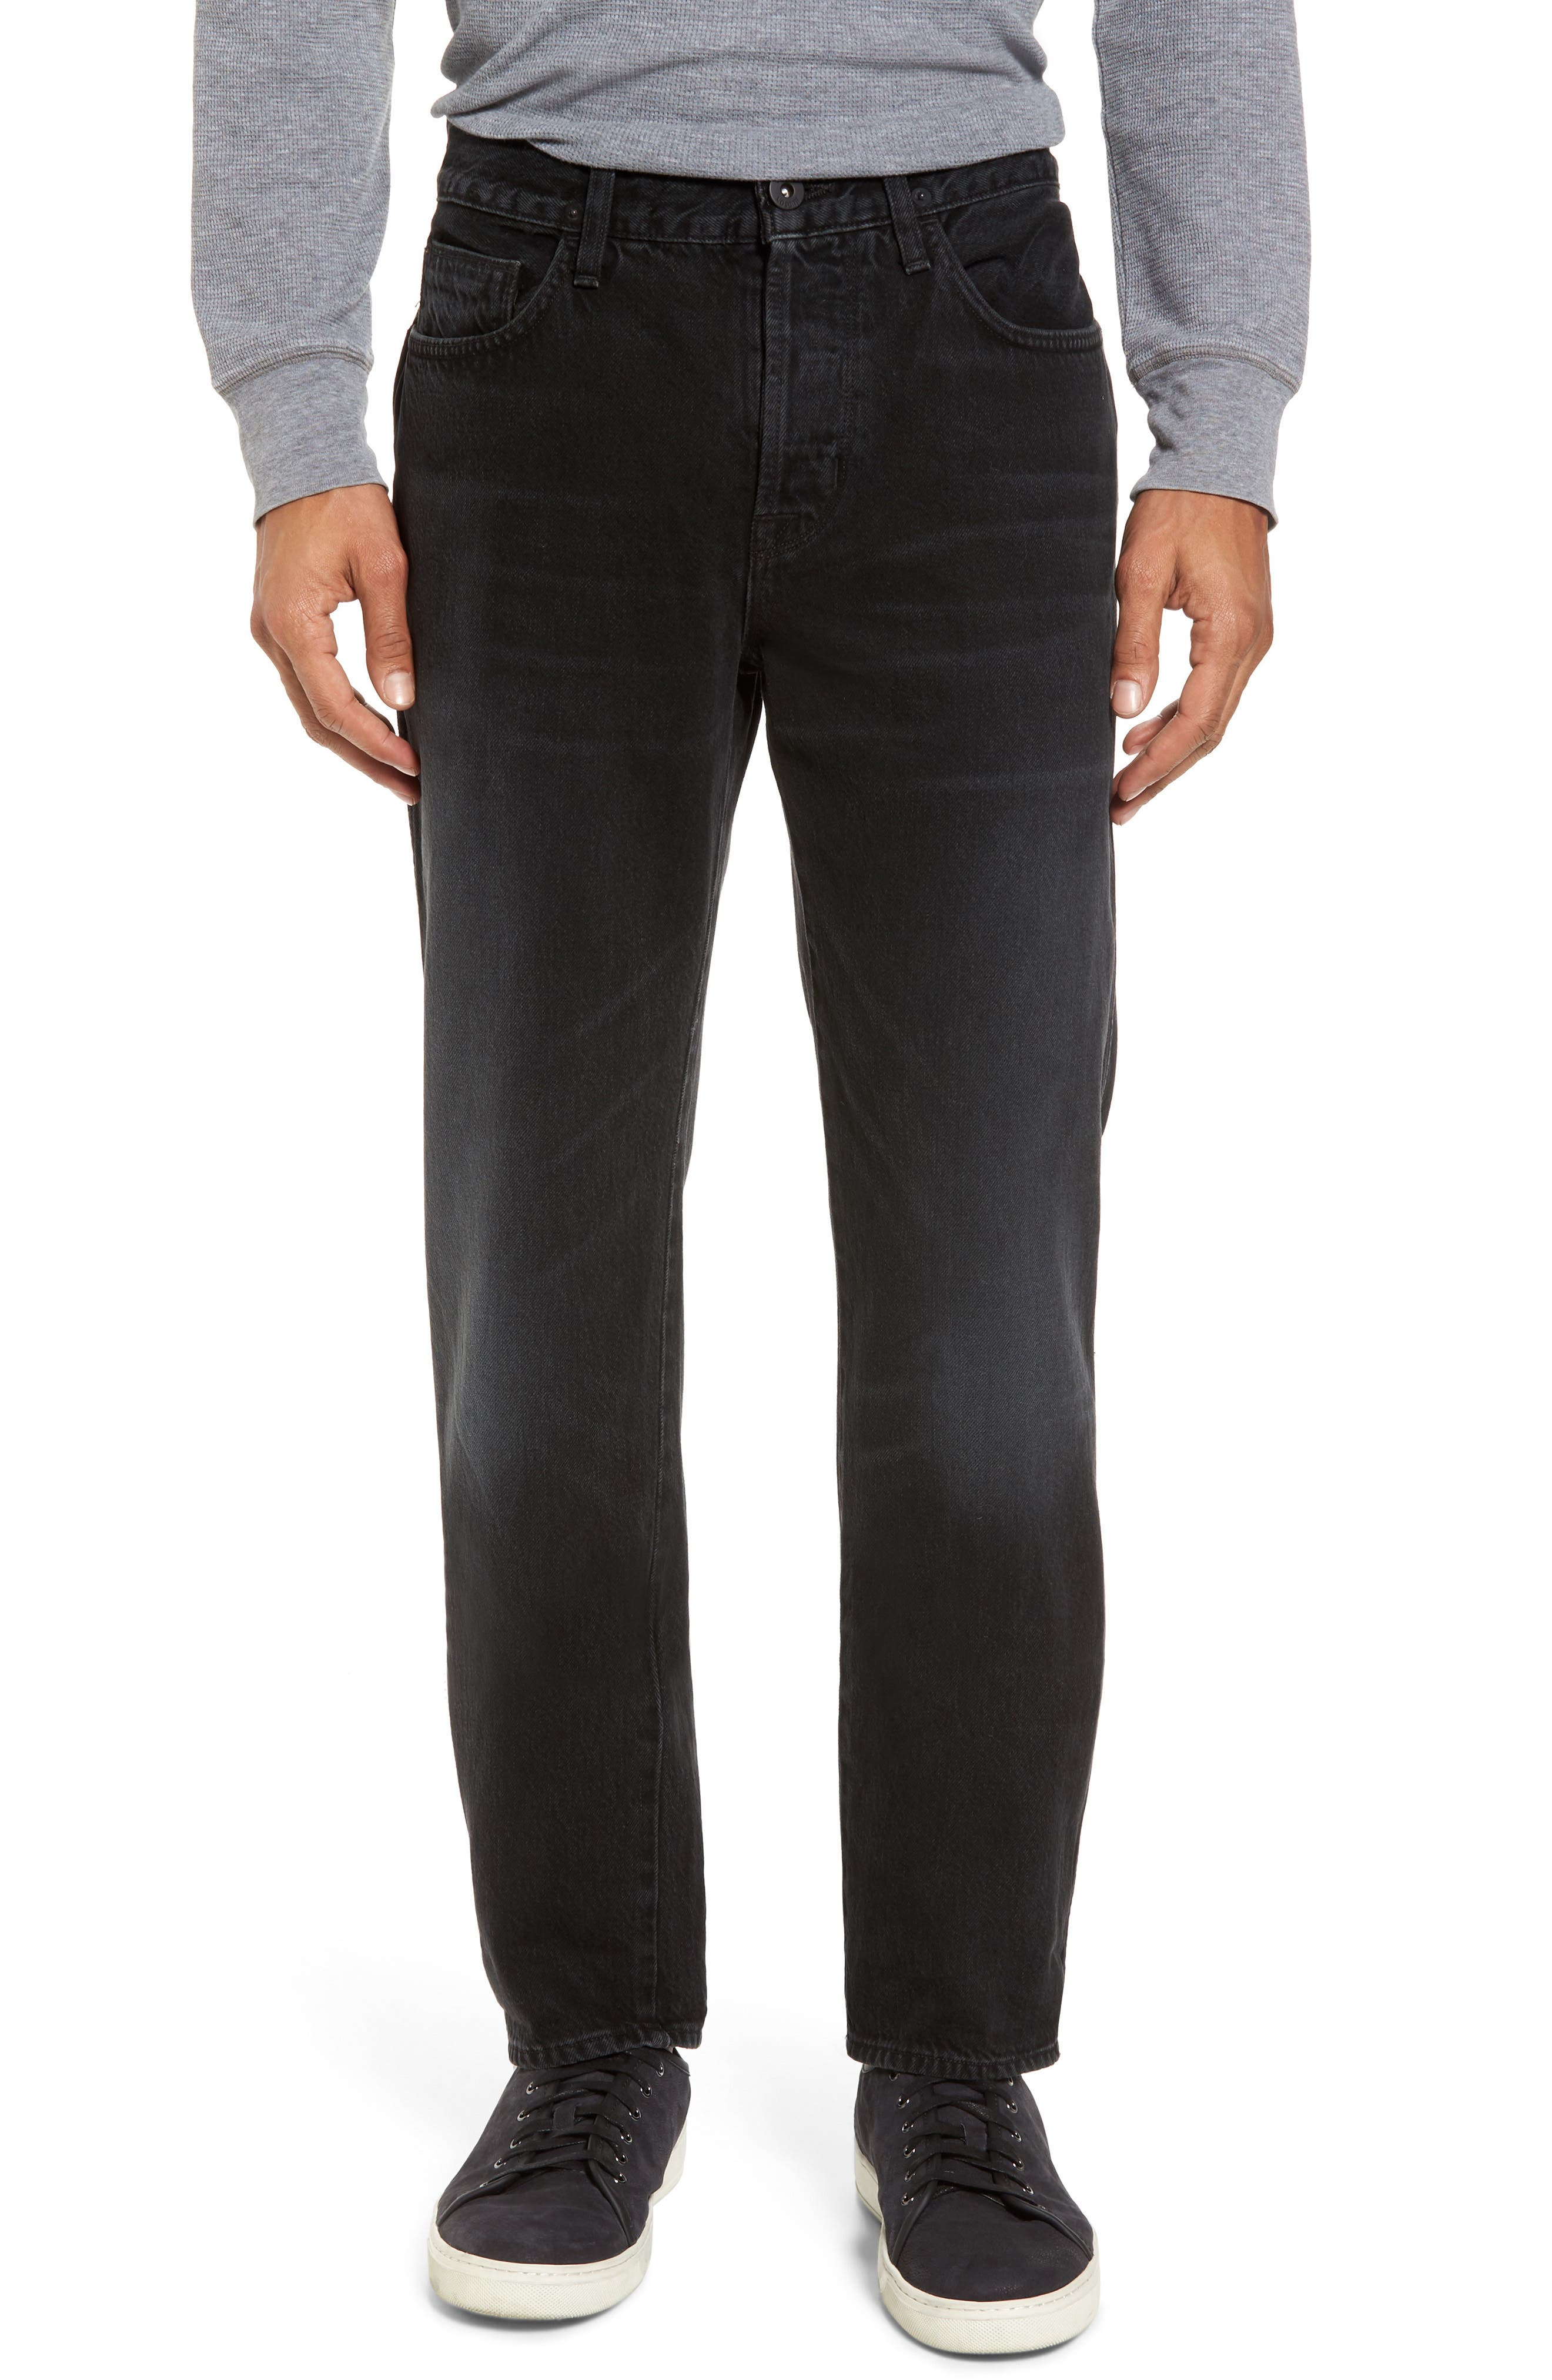 Dixon Straight Fit Jeans,                         Main,                         color, Mean Street